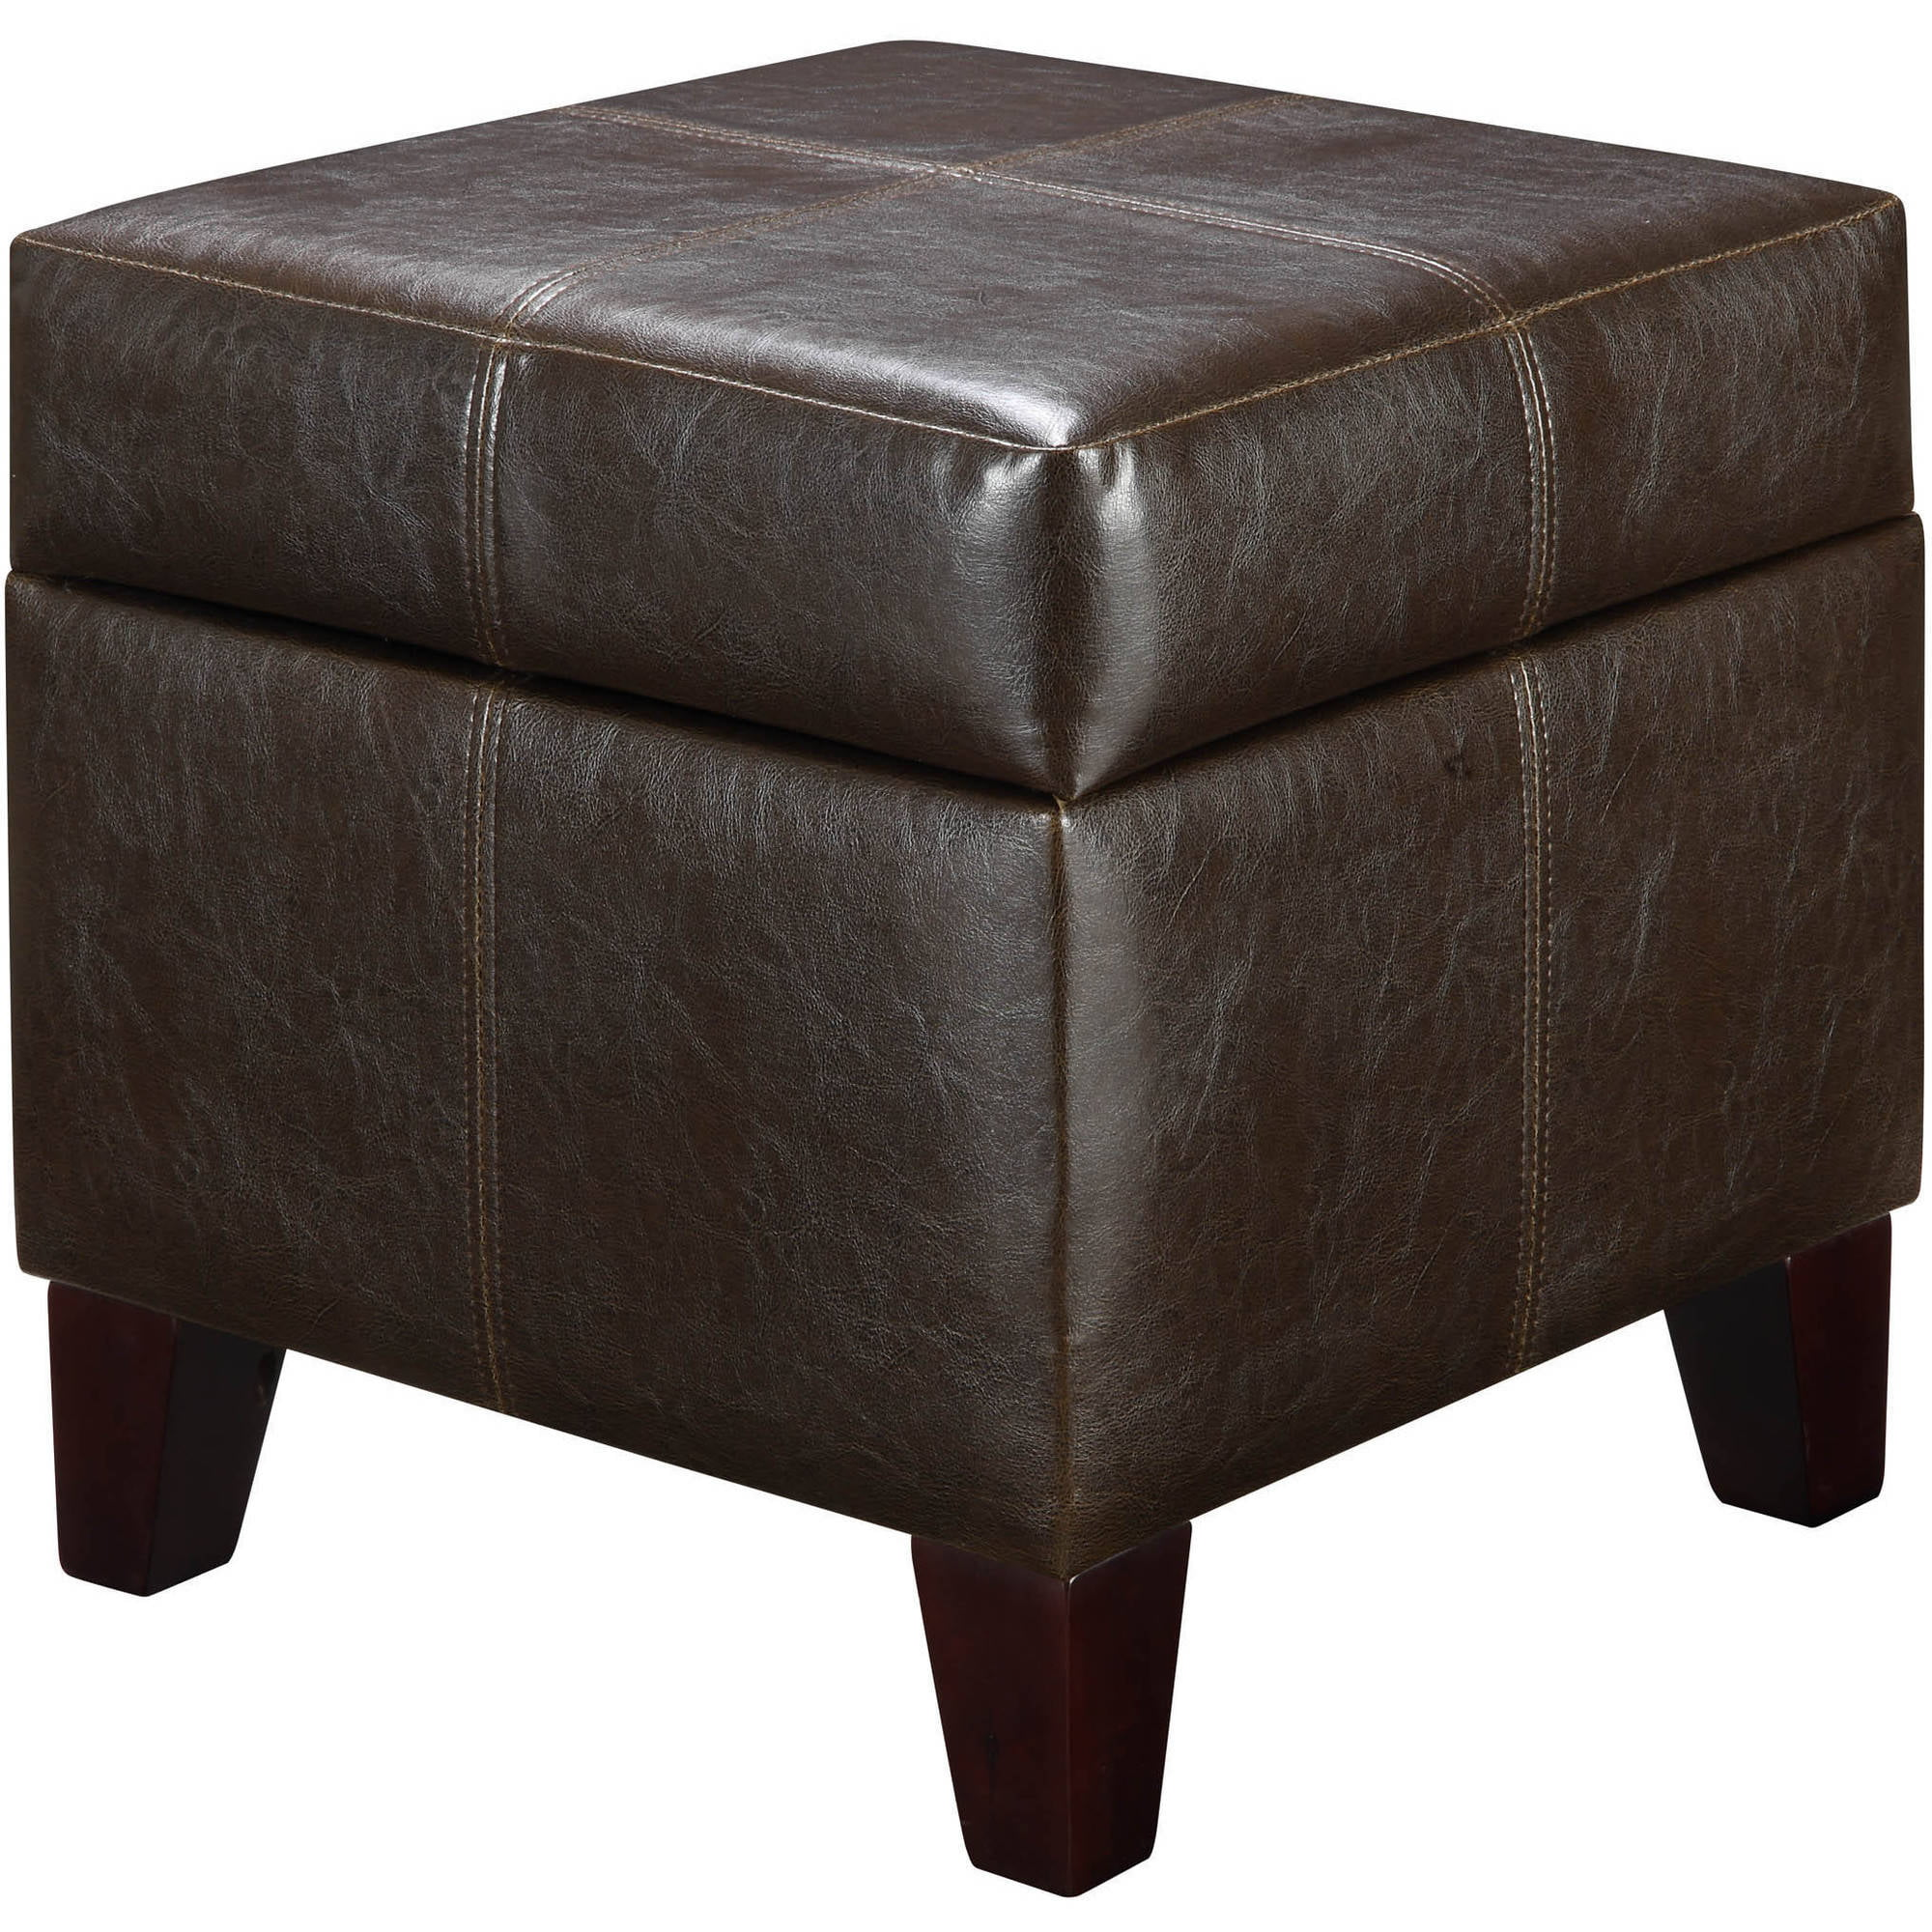 Better Homes and Gardens Faux Leather Storage Ottoman Multiple Colors - Walmart.com  sc 1 st  Walmart & Better Homes and Gardens Faux Leather Storage Ottoman Multiple ... islam-shia.org